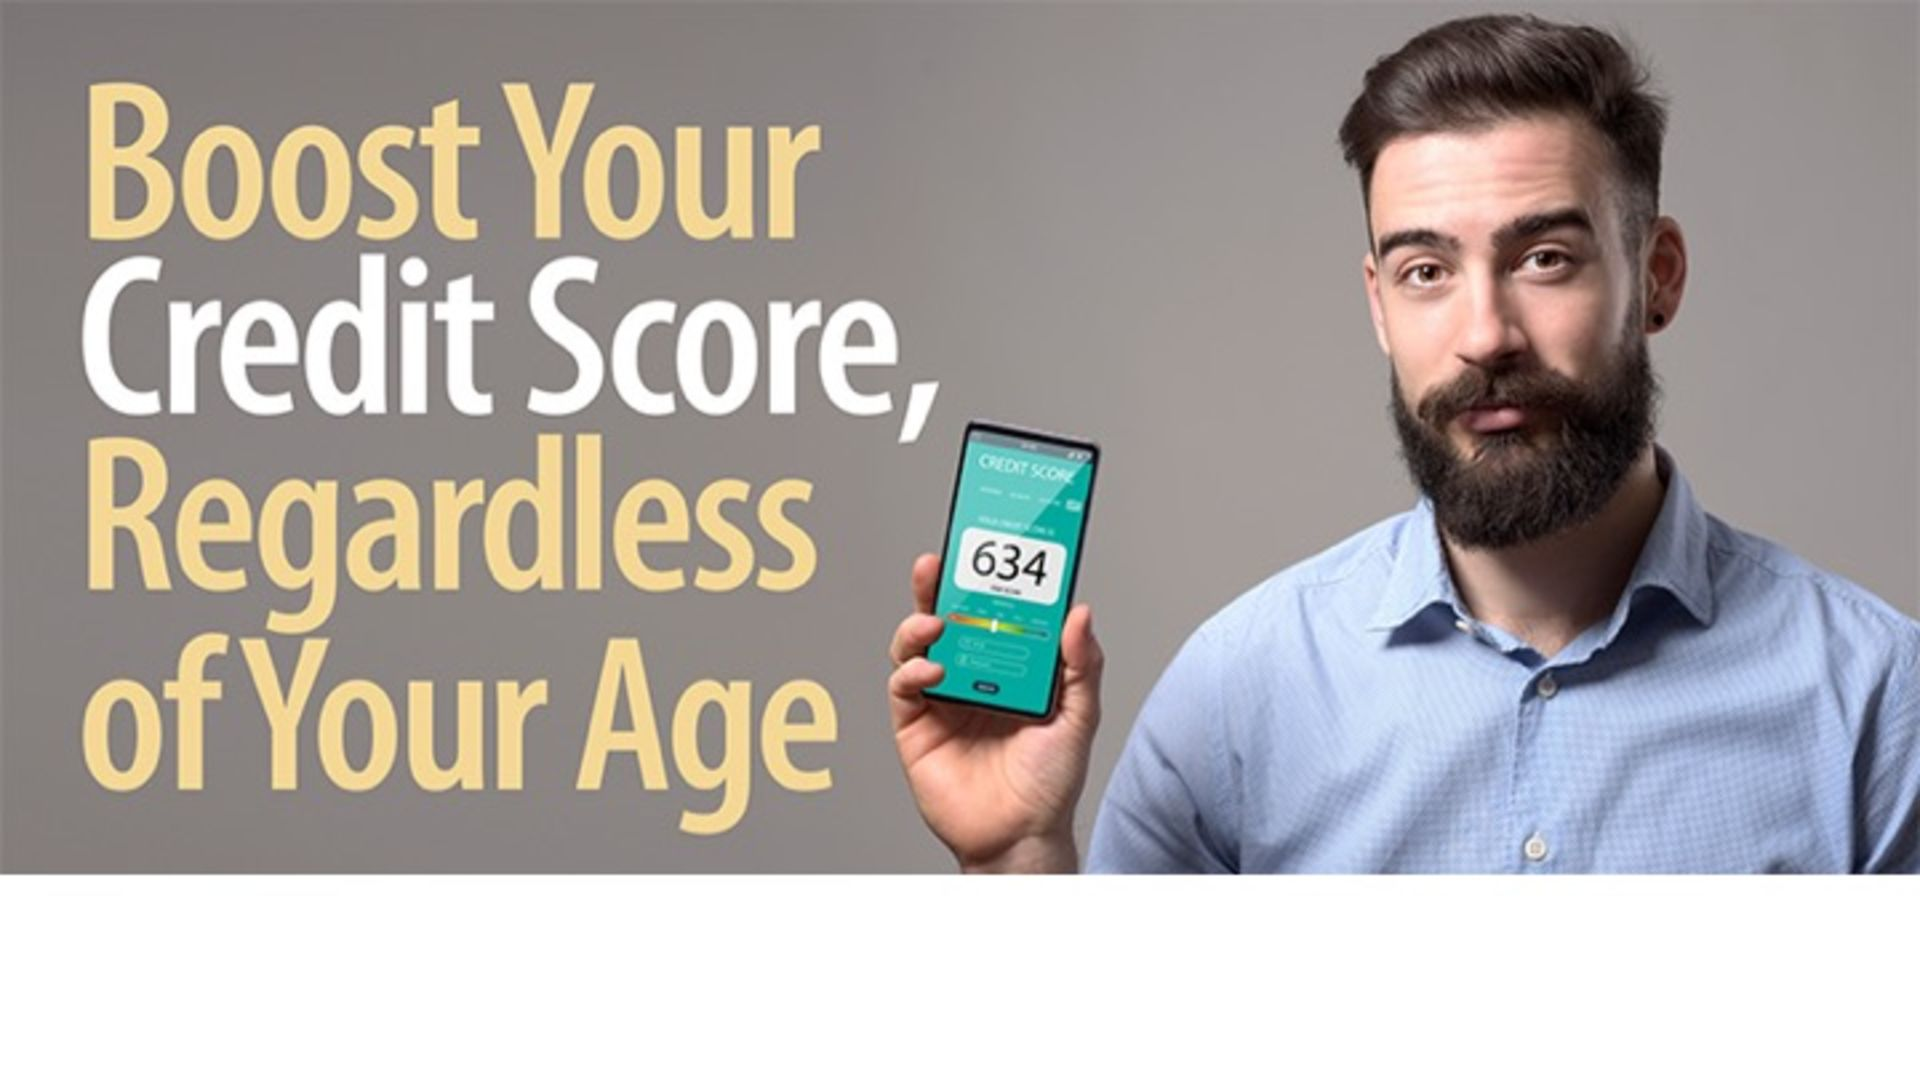 Boost Your Credit Score Regardless of Your Age